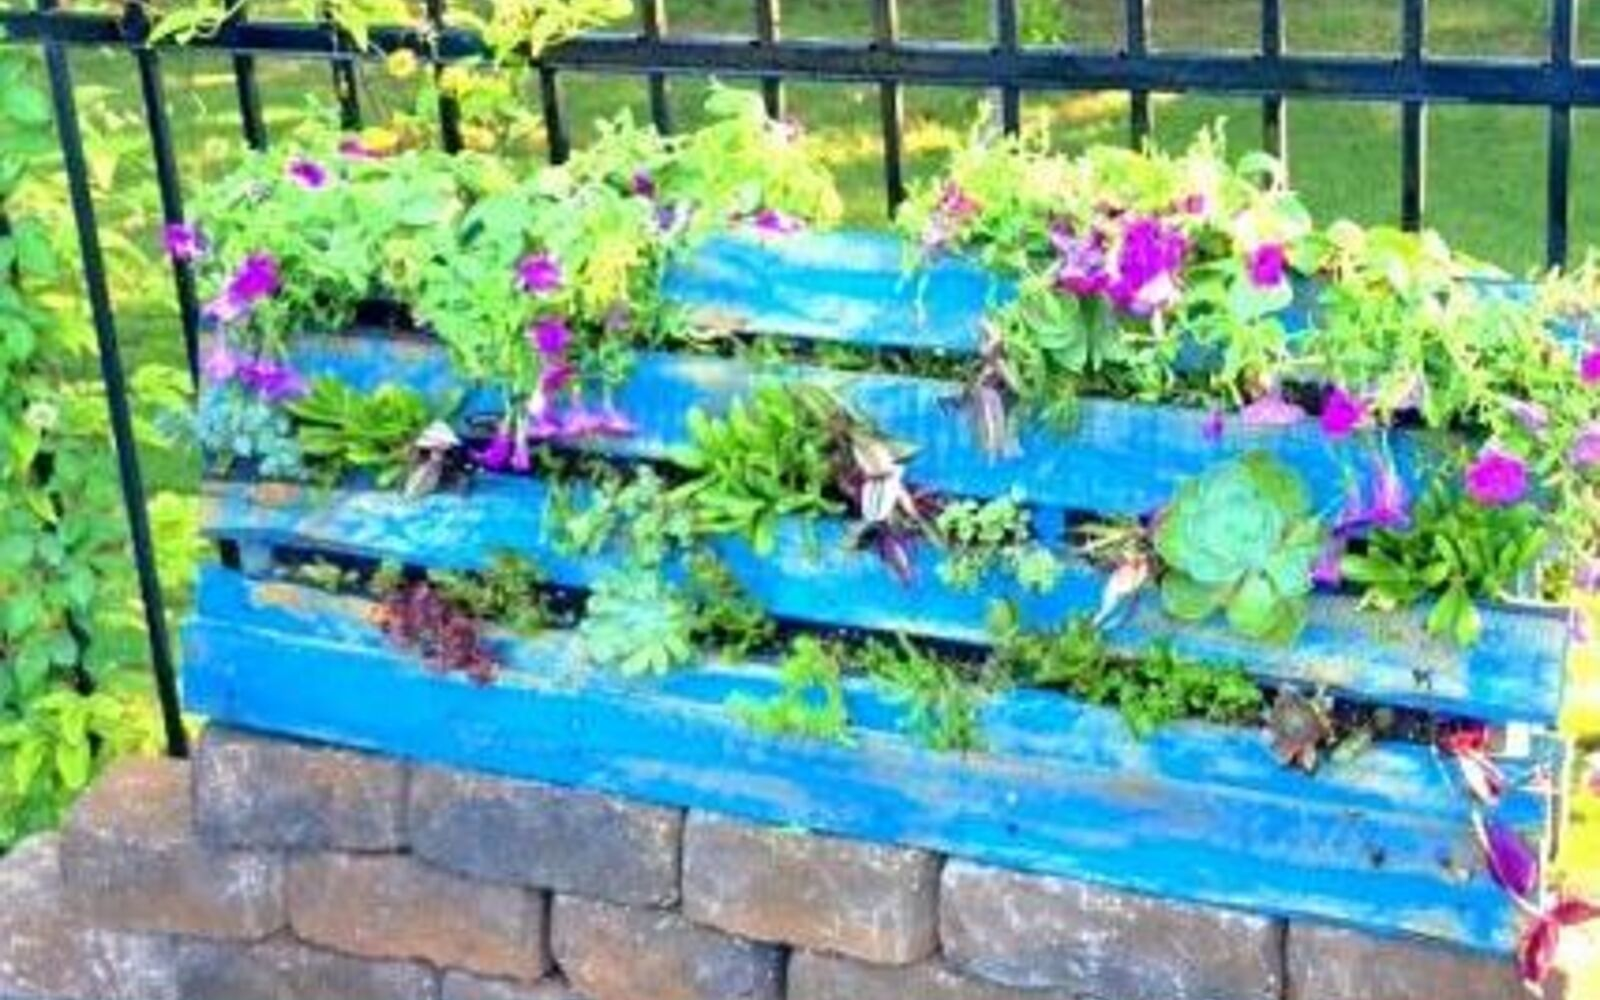 s 30 ways for you to style your garden, Craft A Pallet With Soil For Plants